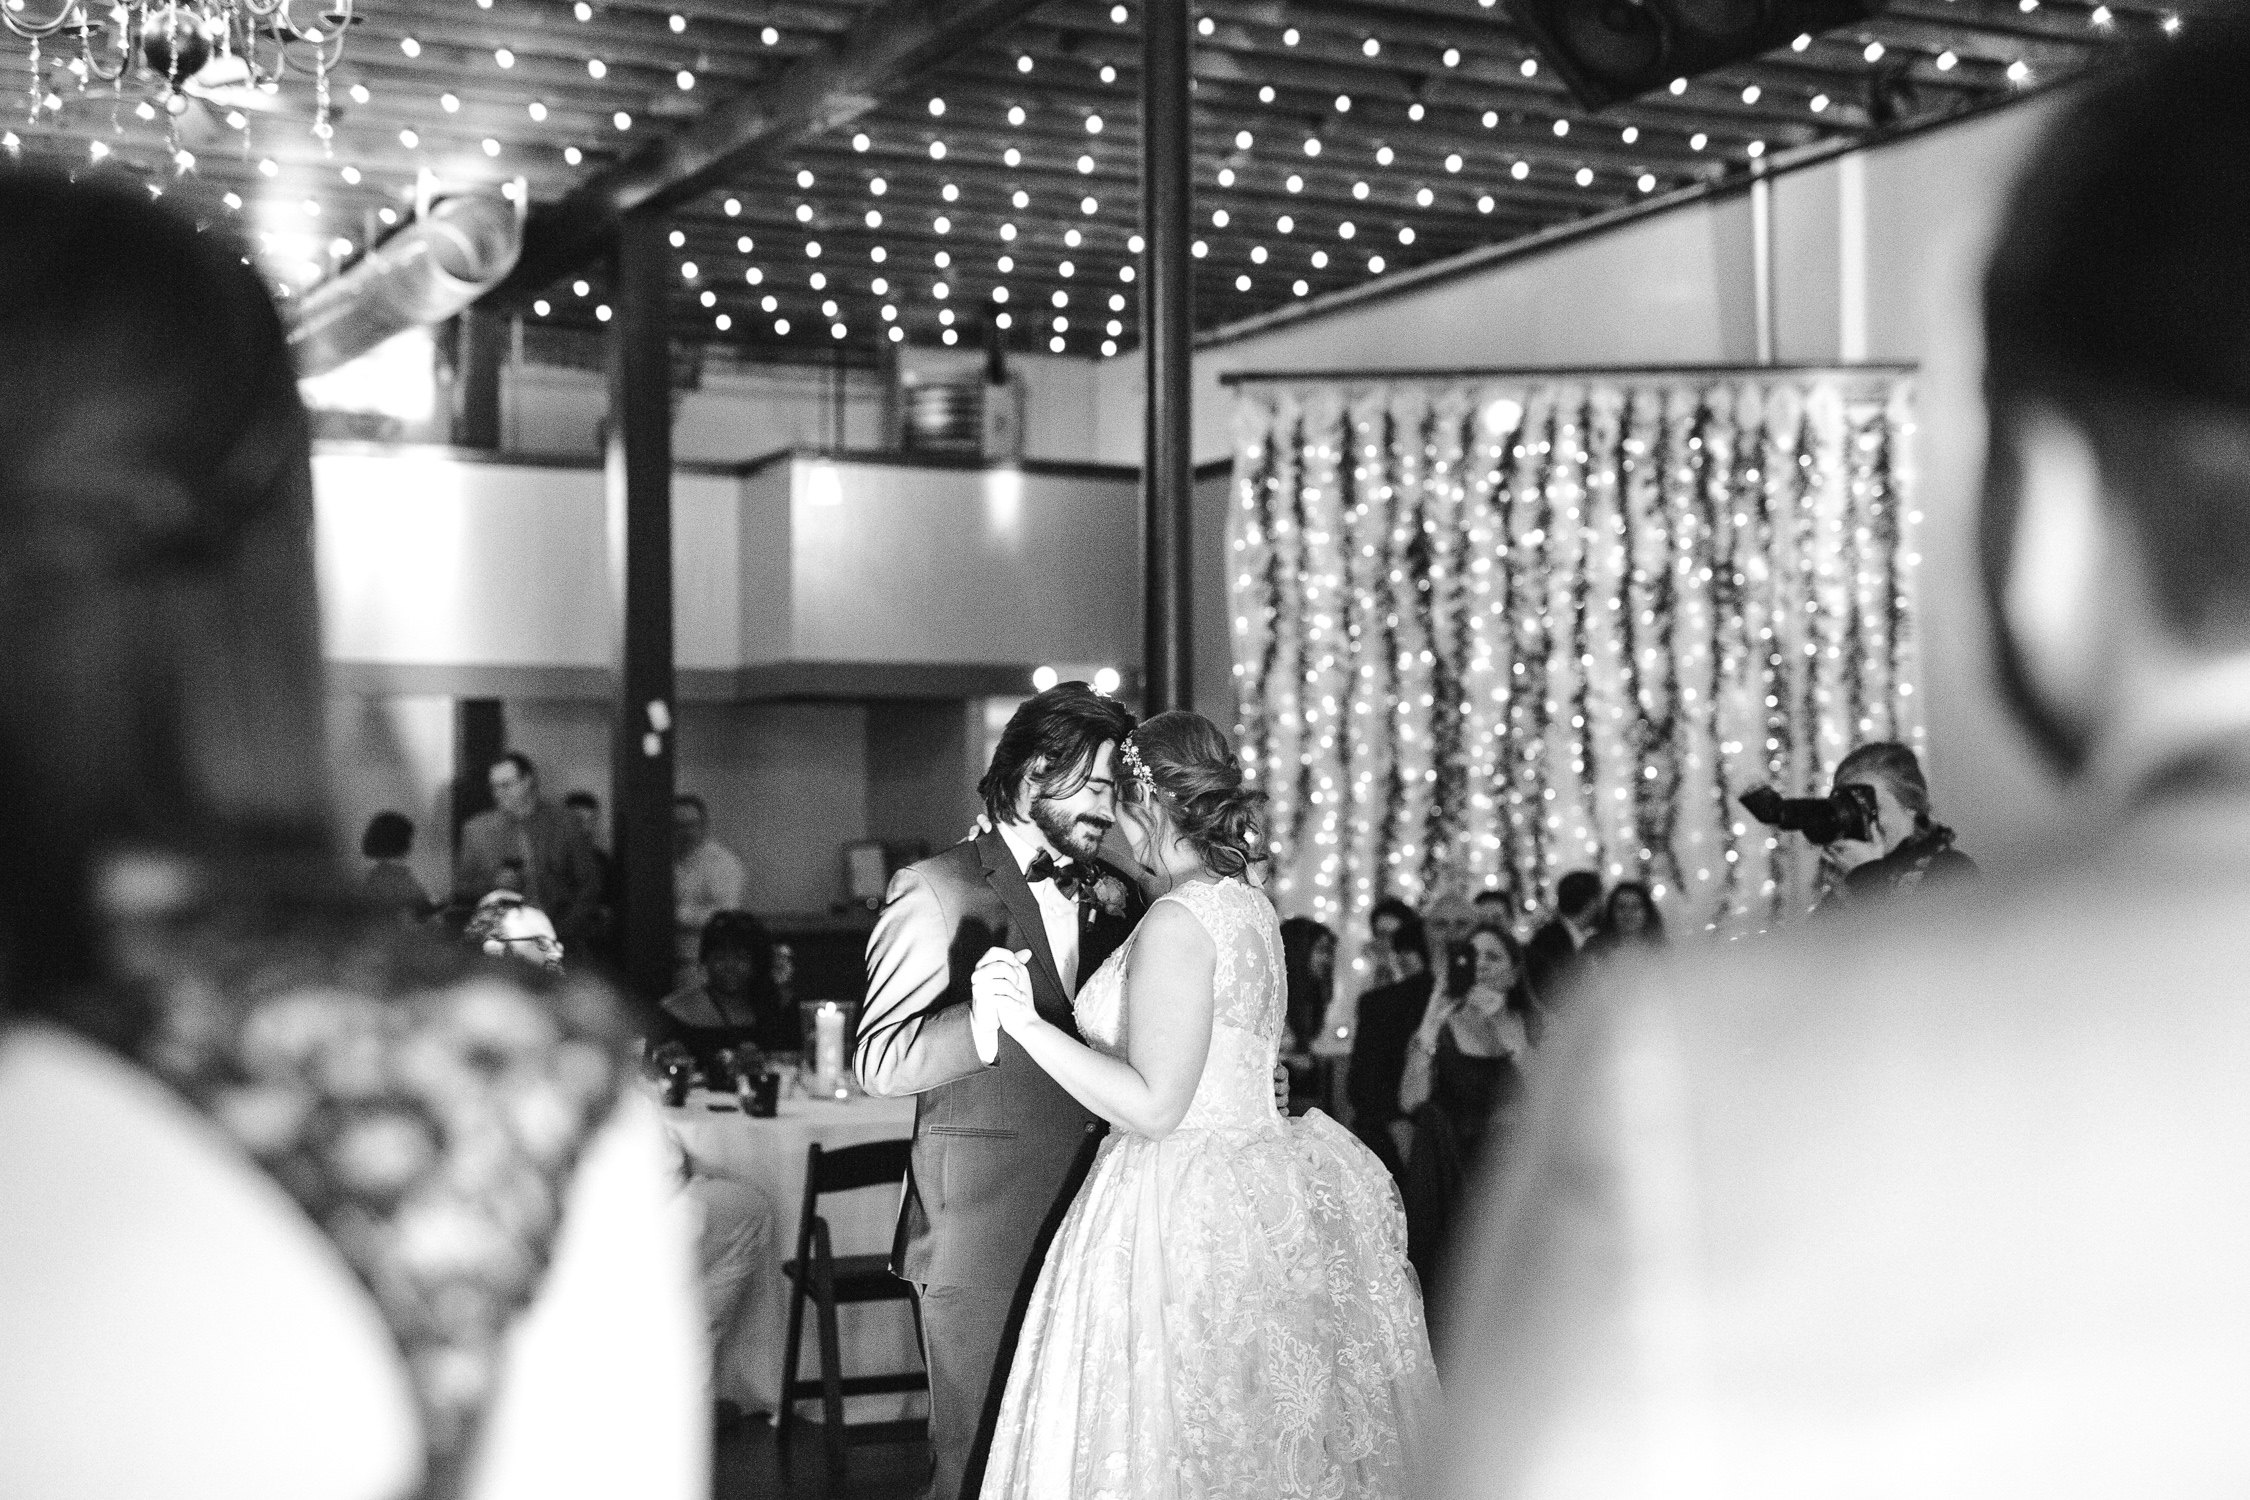 Downtown Knoxville Wedding Venue // Central Avenue Reception // First Dance under the Bistro Lights